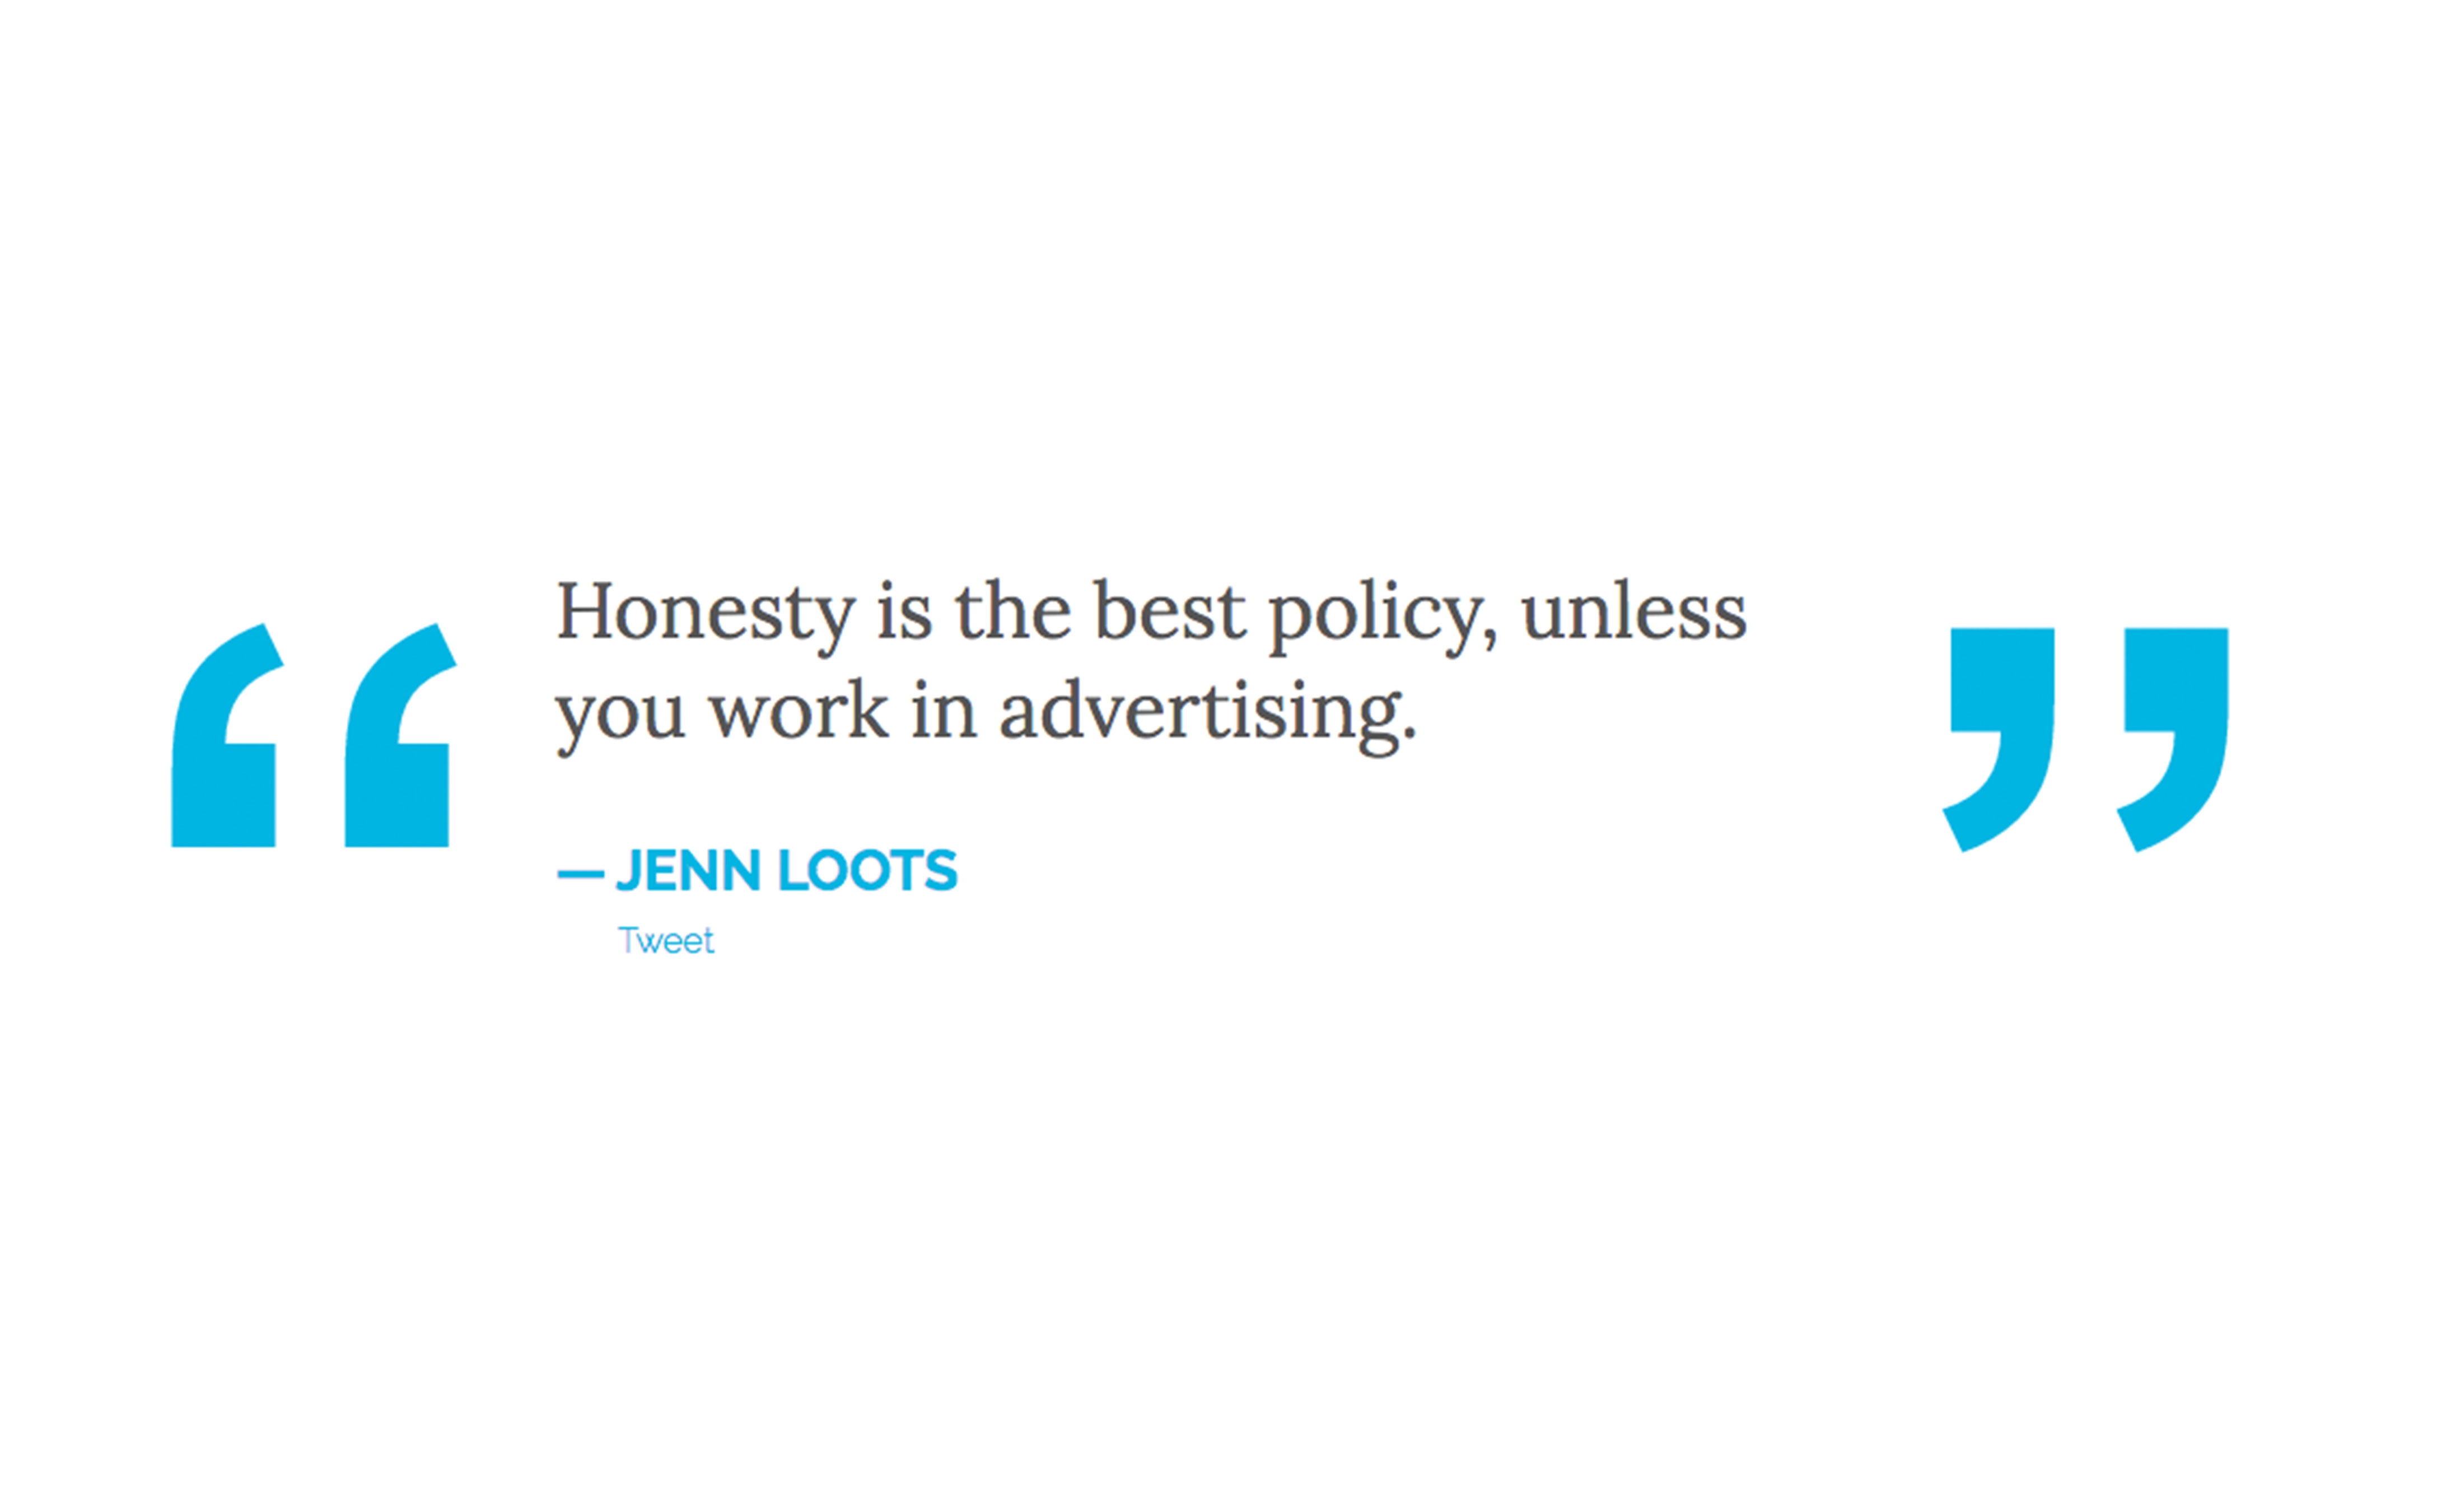 How honest should you be when it comes to advertising your brand?